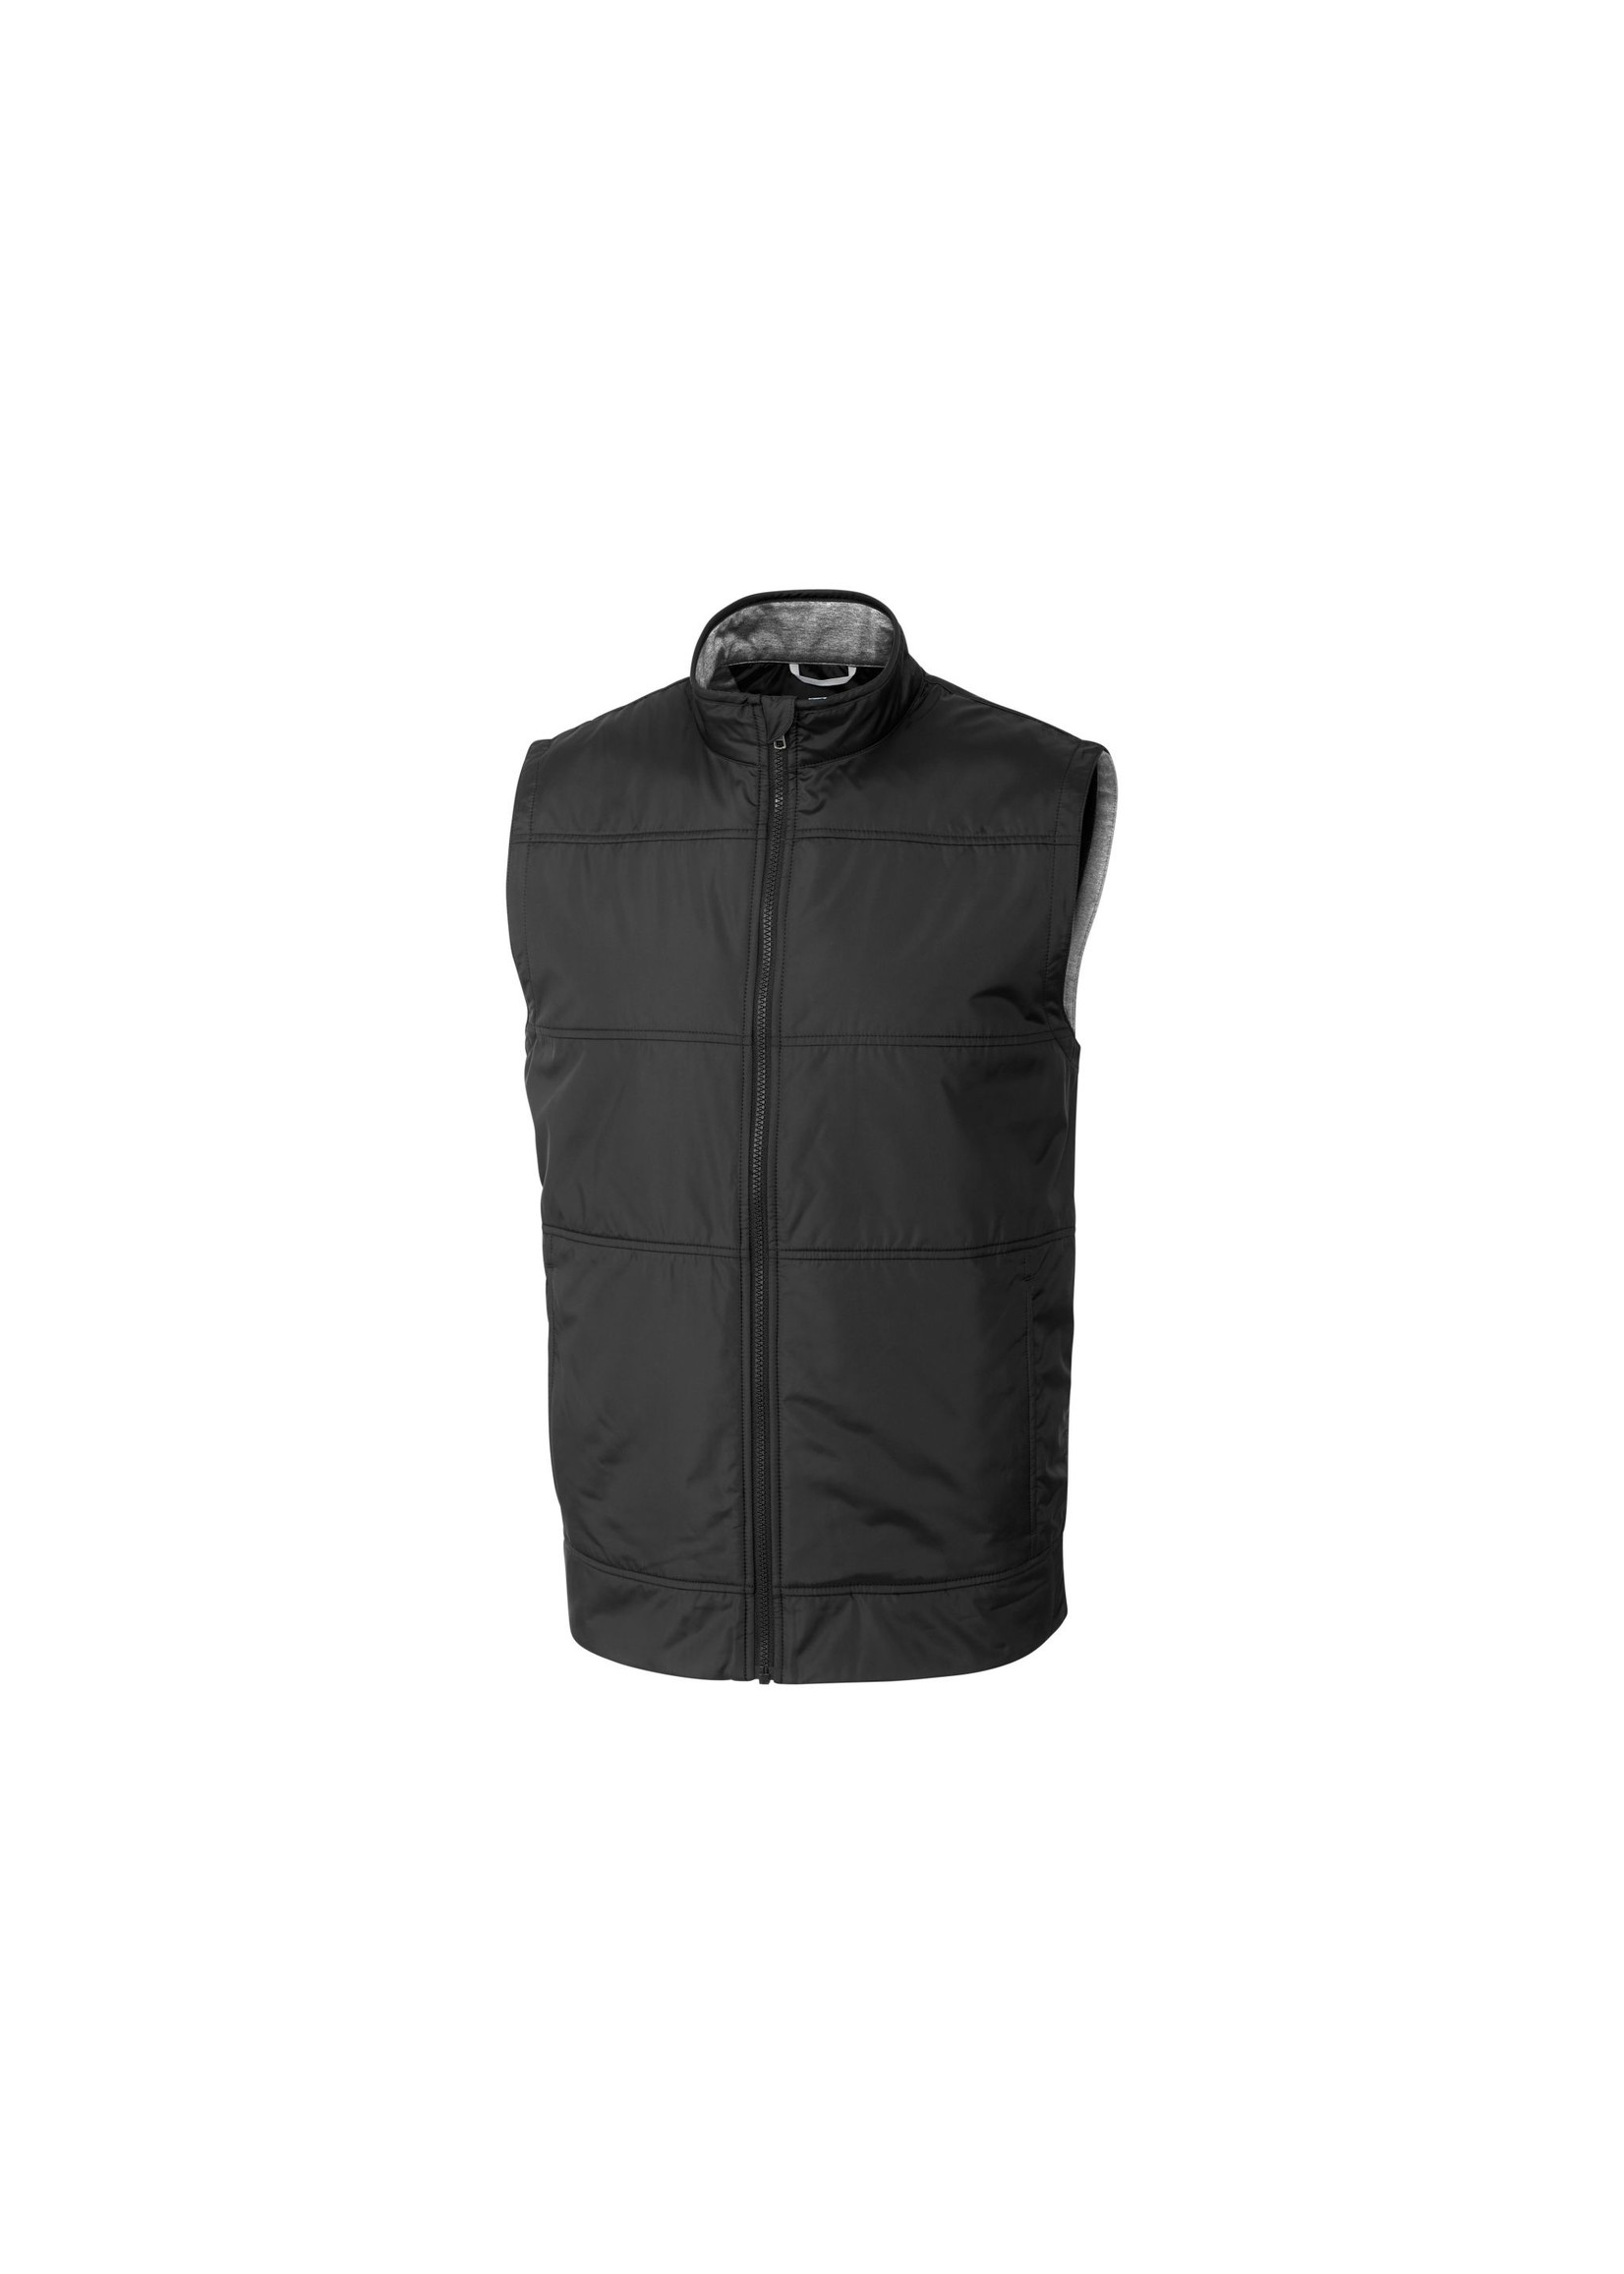 Cutter & Buck Stealth Hybrid Quilted Full Zip Vest by Cutter & Buck